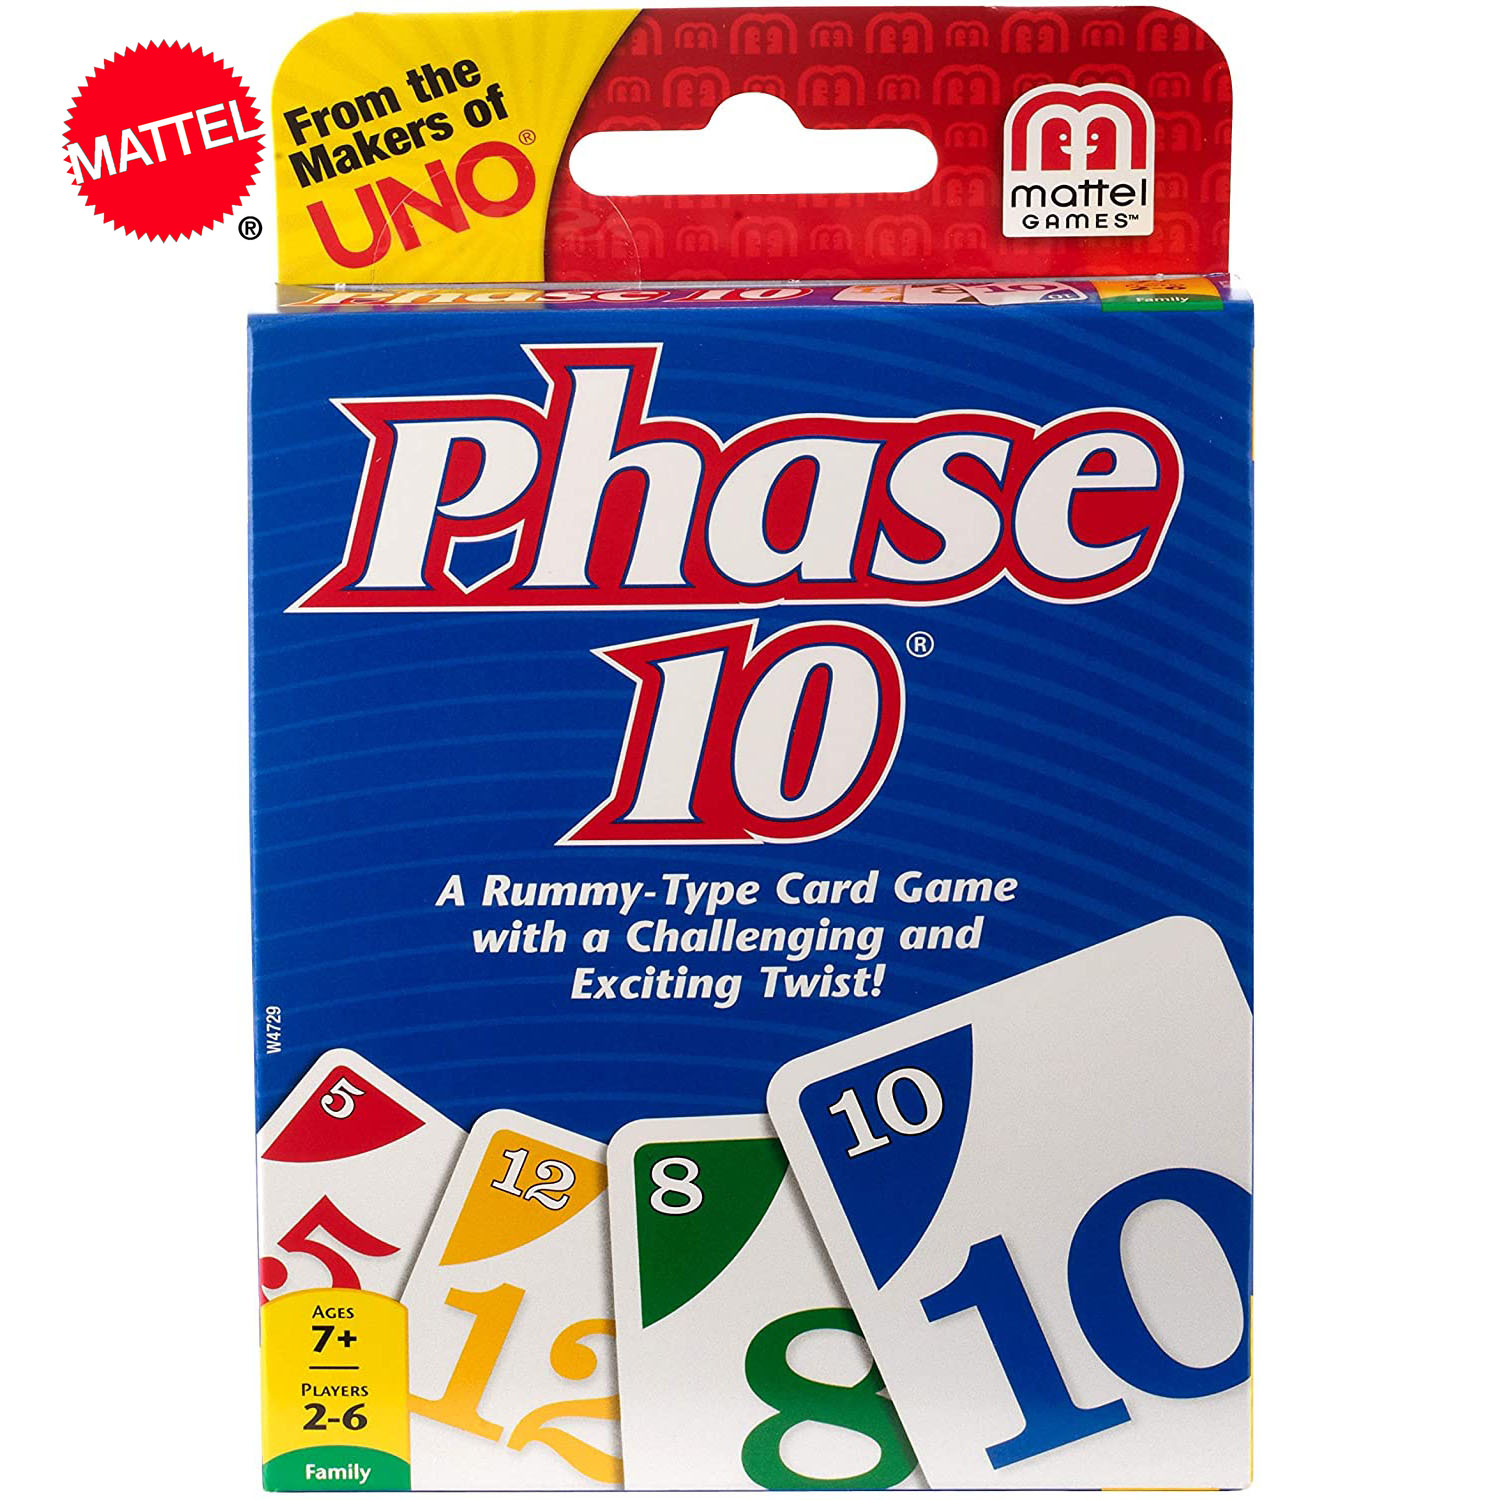 Topsale Puzzle Games Mattel Genuine UNO Phase10 Family Funny Entertainment Board Game Fun Poker Playing Cards Gift Box Phase 10